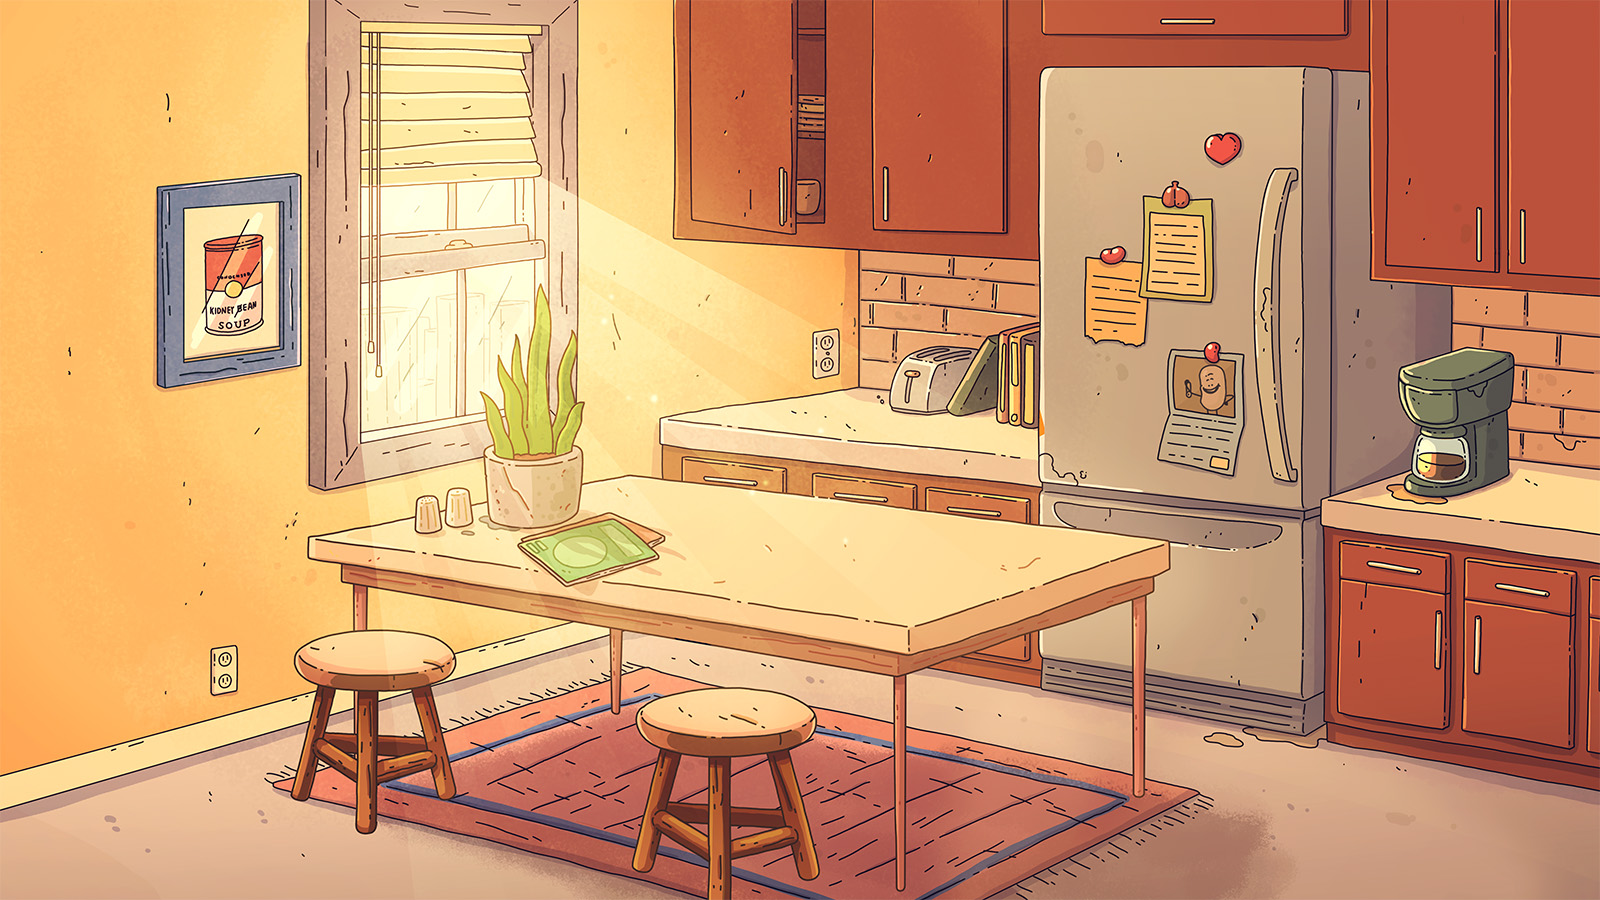 Kidney's Background of Kitchen